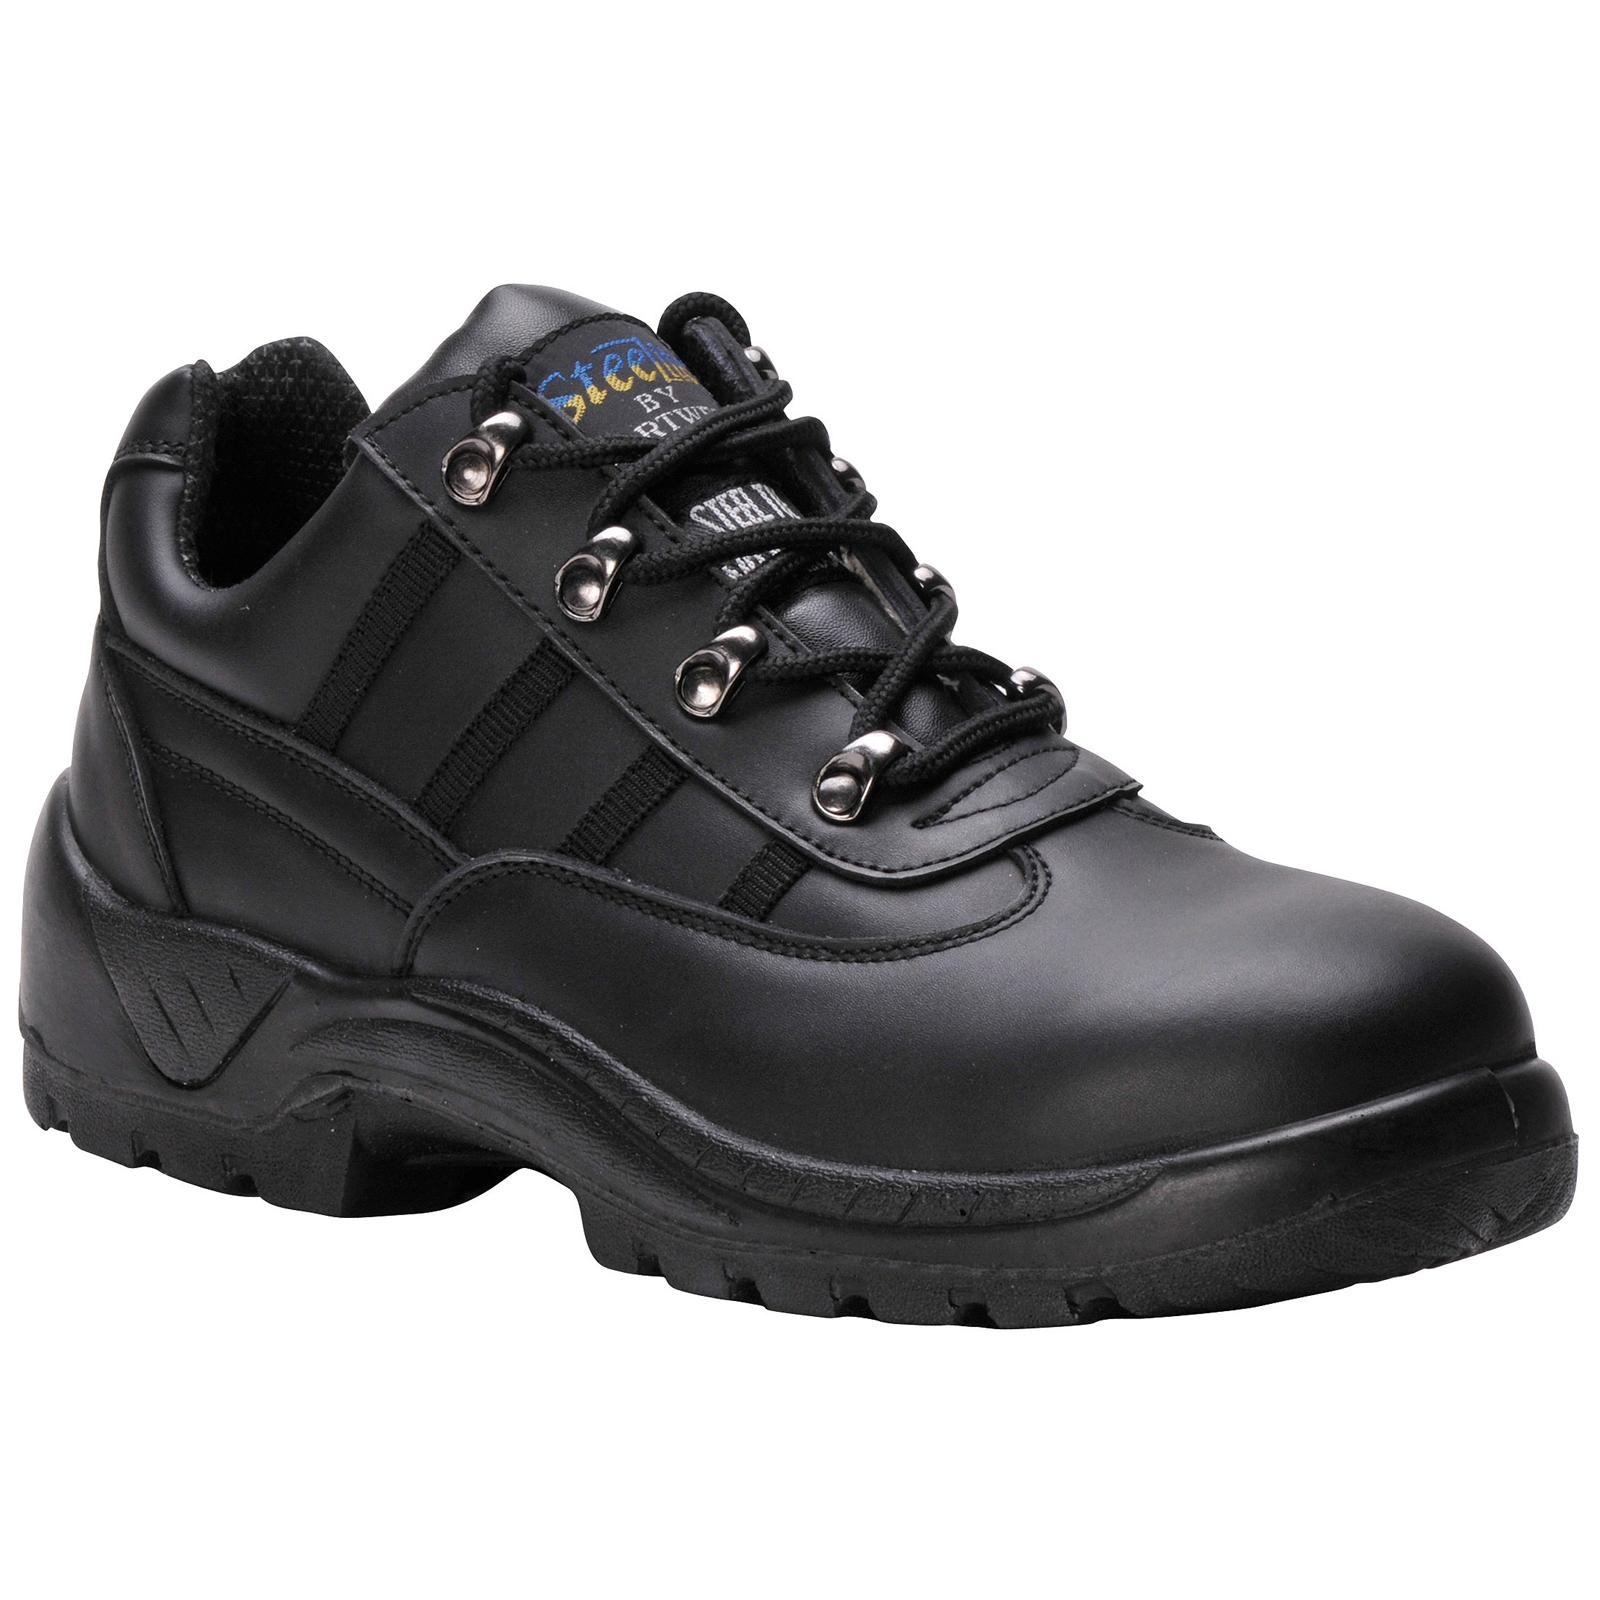 New PORTWEST Mens Work Safety Steelite Leather Trainer Shoes Black Size 5-12